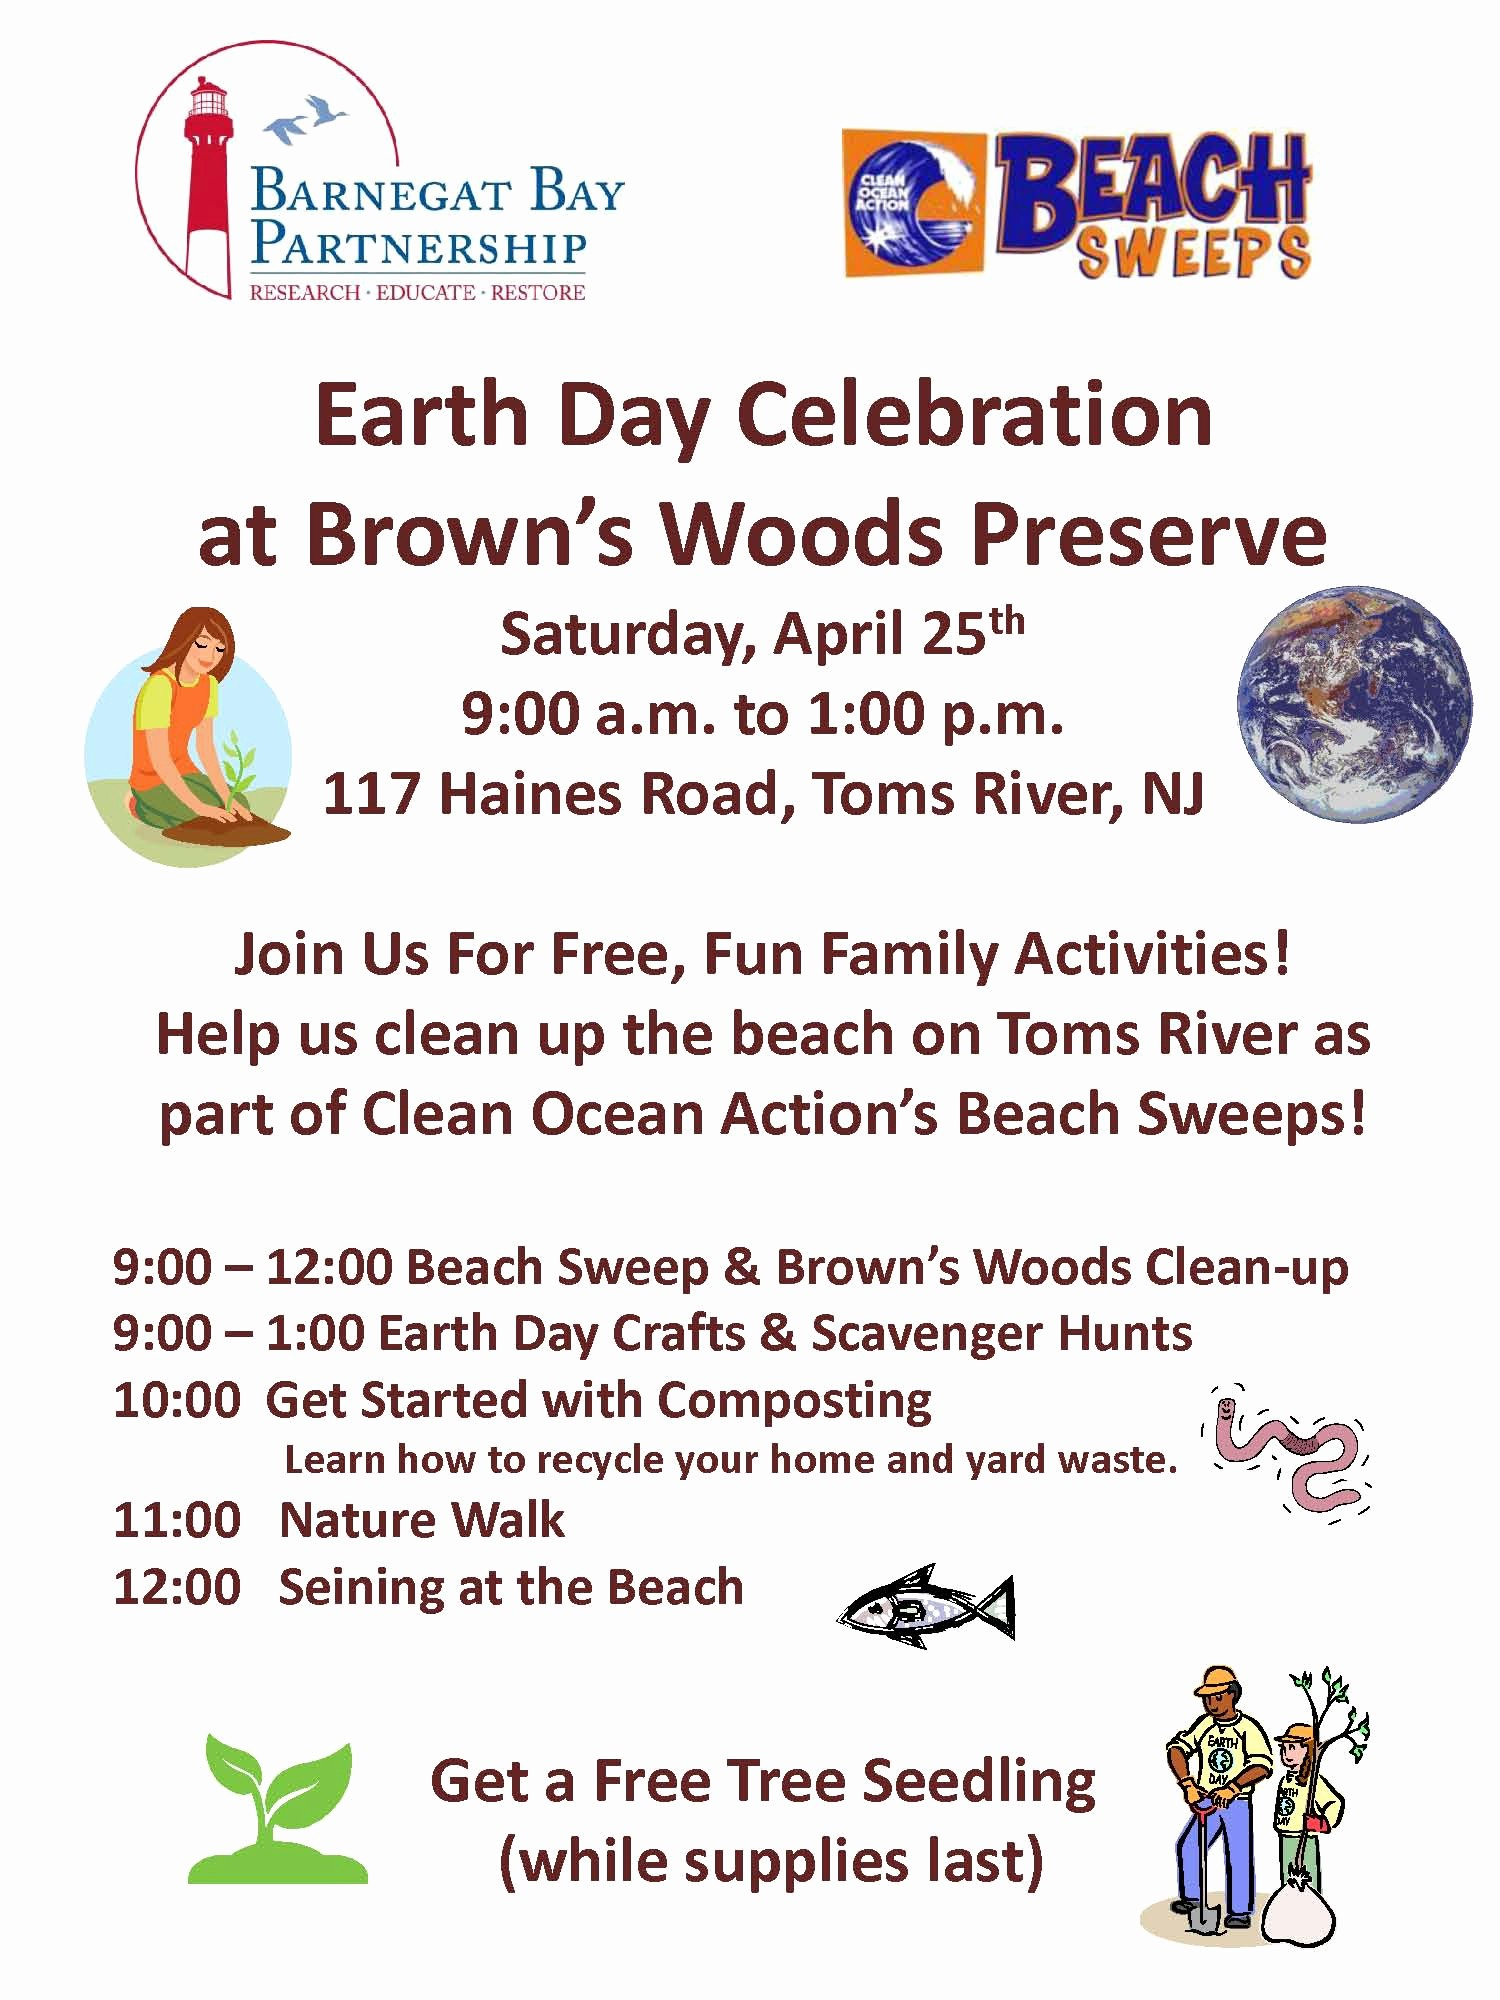 Office Clean Up Day Flyer Awesome Earth Day Celebration at Brown S Woods In toms River